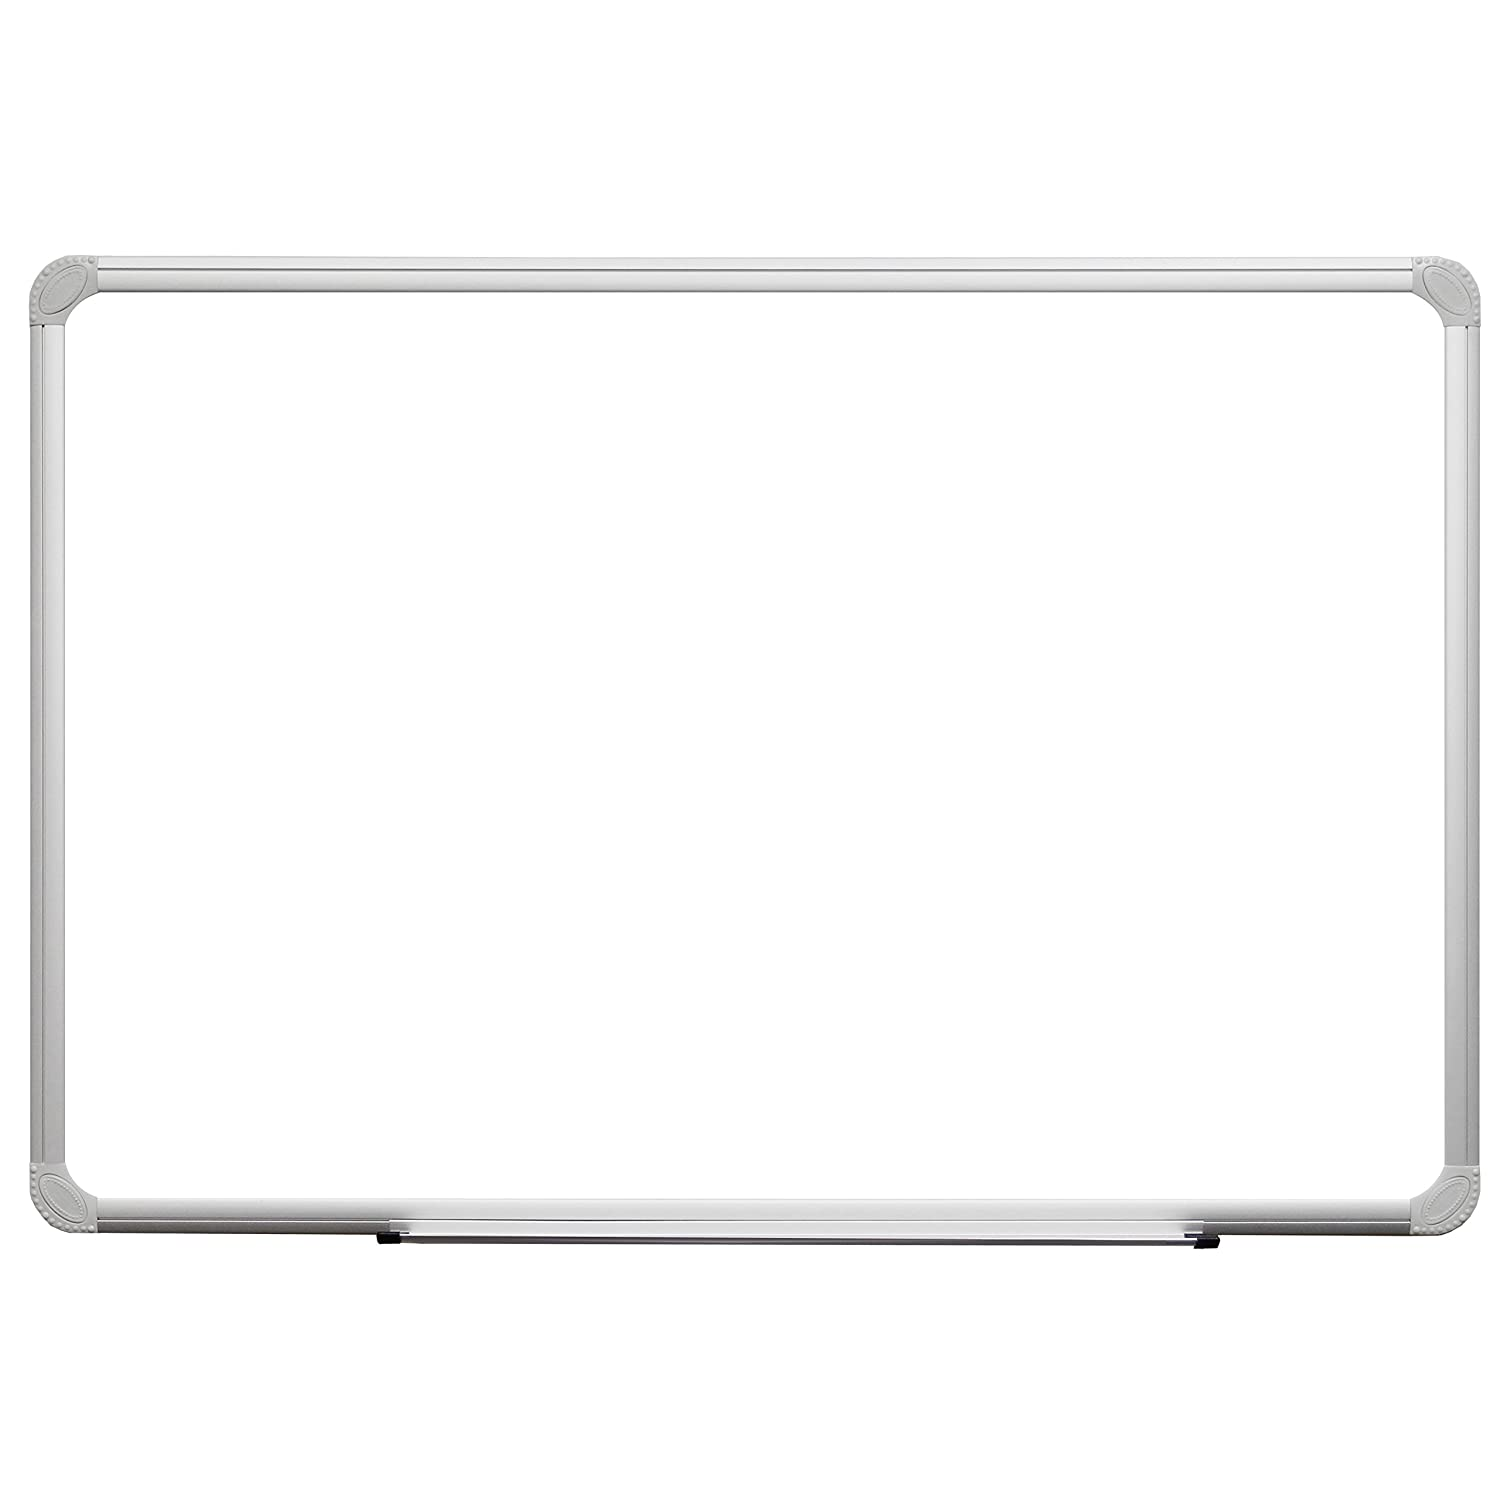 36 x 24 White Melamine Dry Erase Board with Aluminum Frame and Marker Tray Superior Essentials 24X36_WHITEBOARD